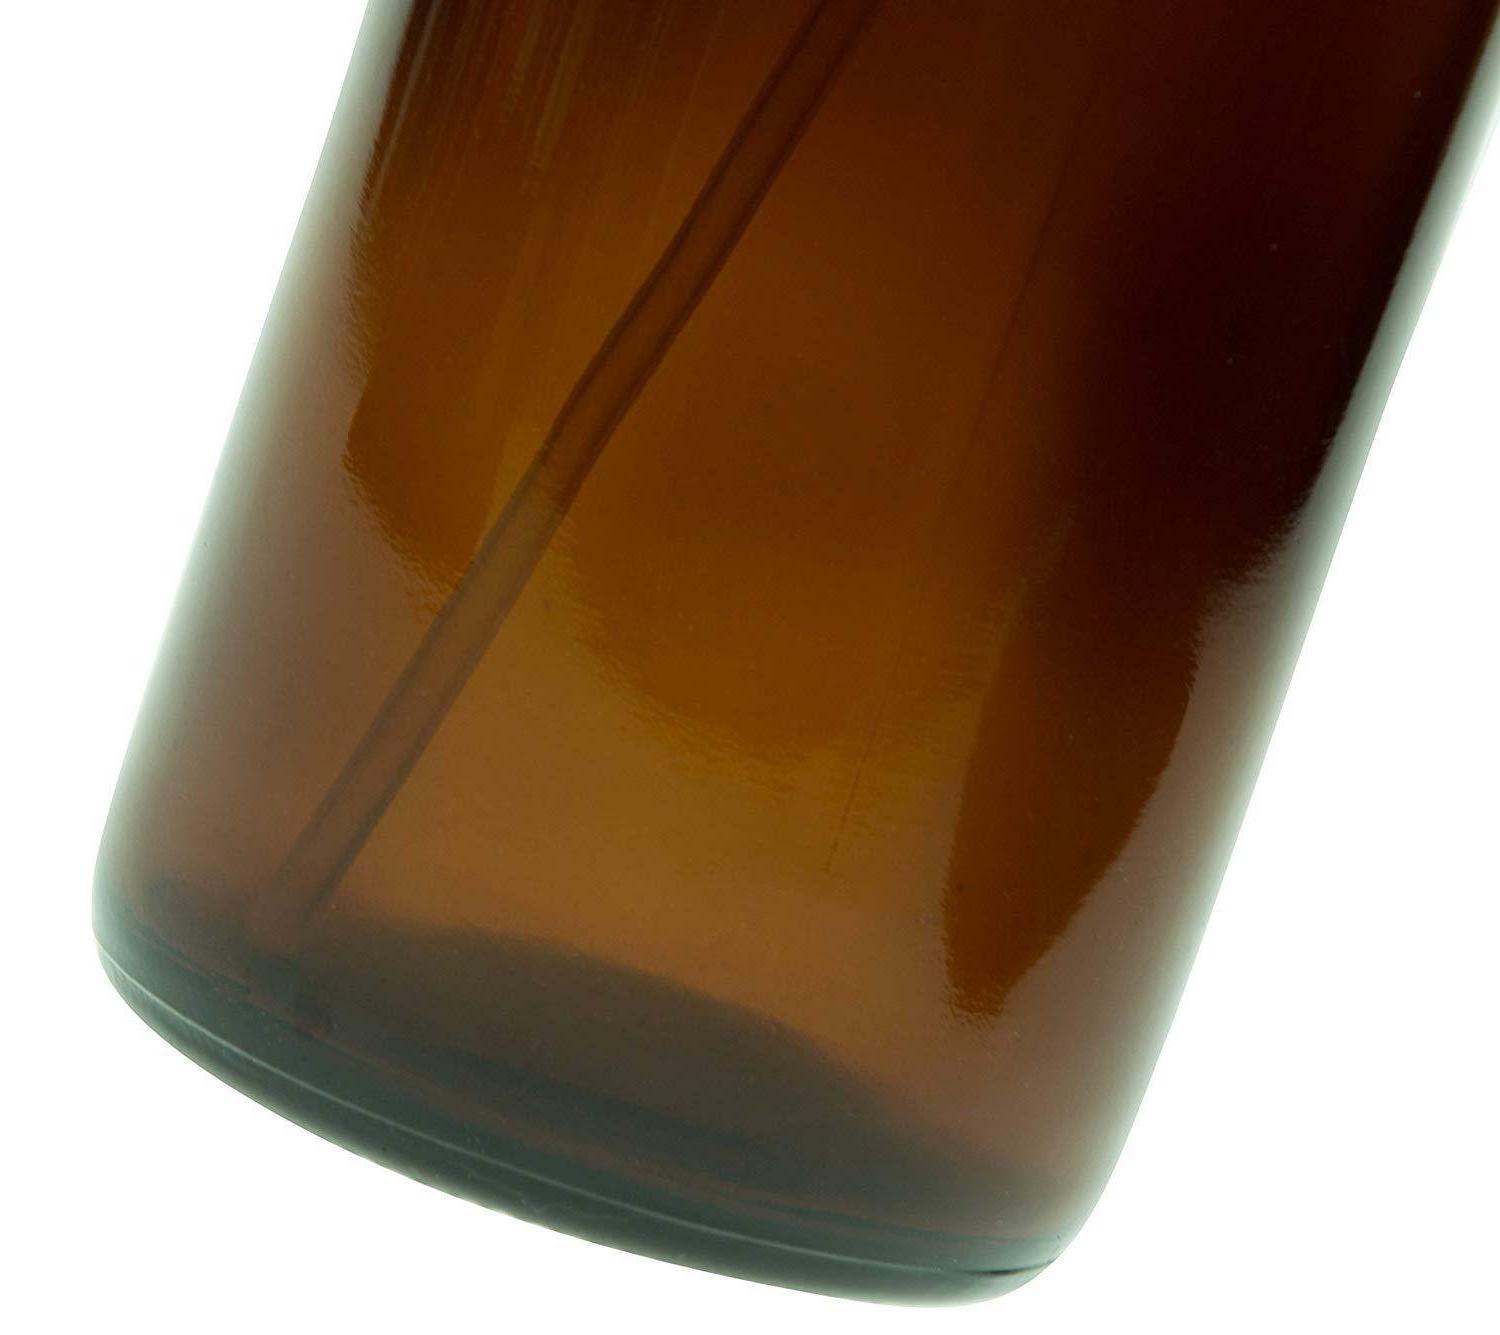 Empty Amber Glass Spray Bottles - 16oz Refillable